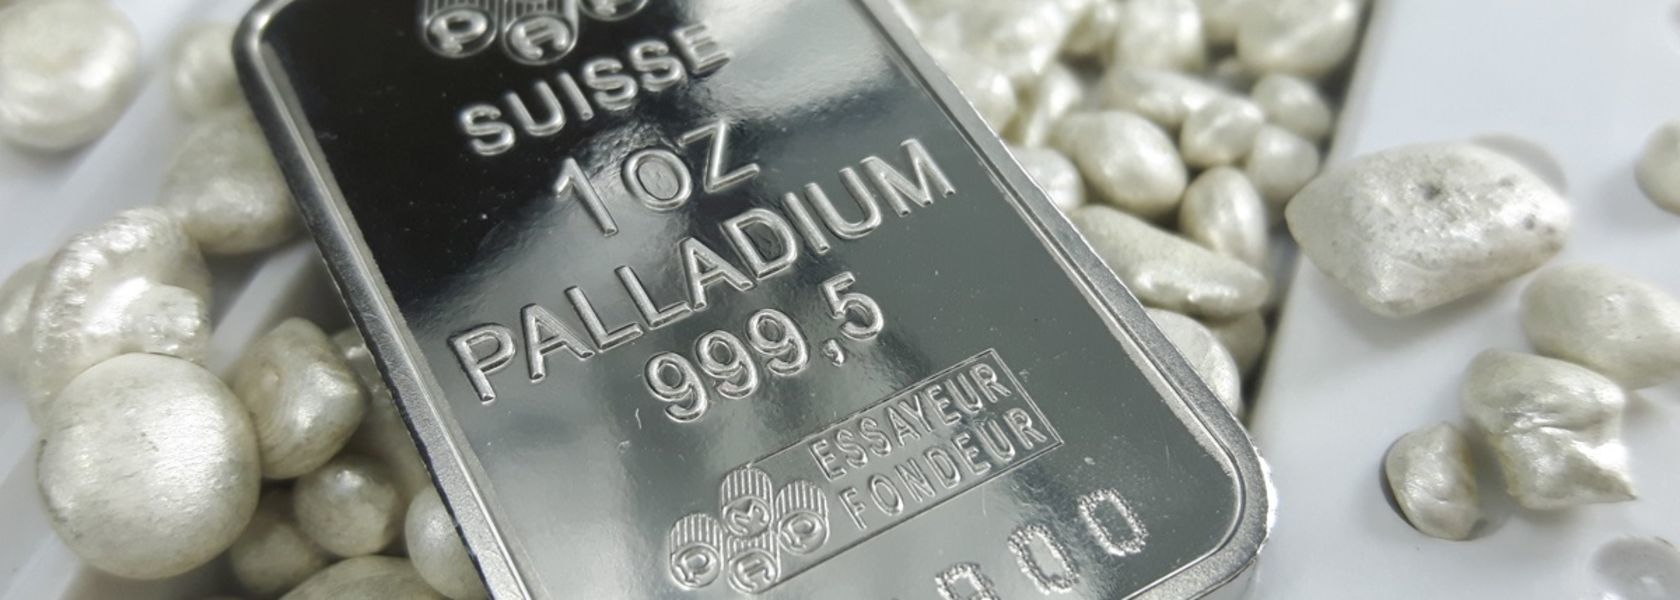 Palladium party is winding up, watch out for the fall